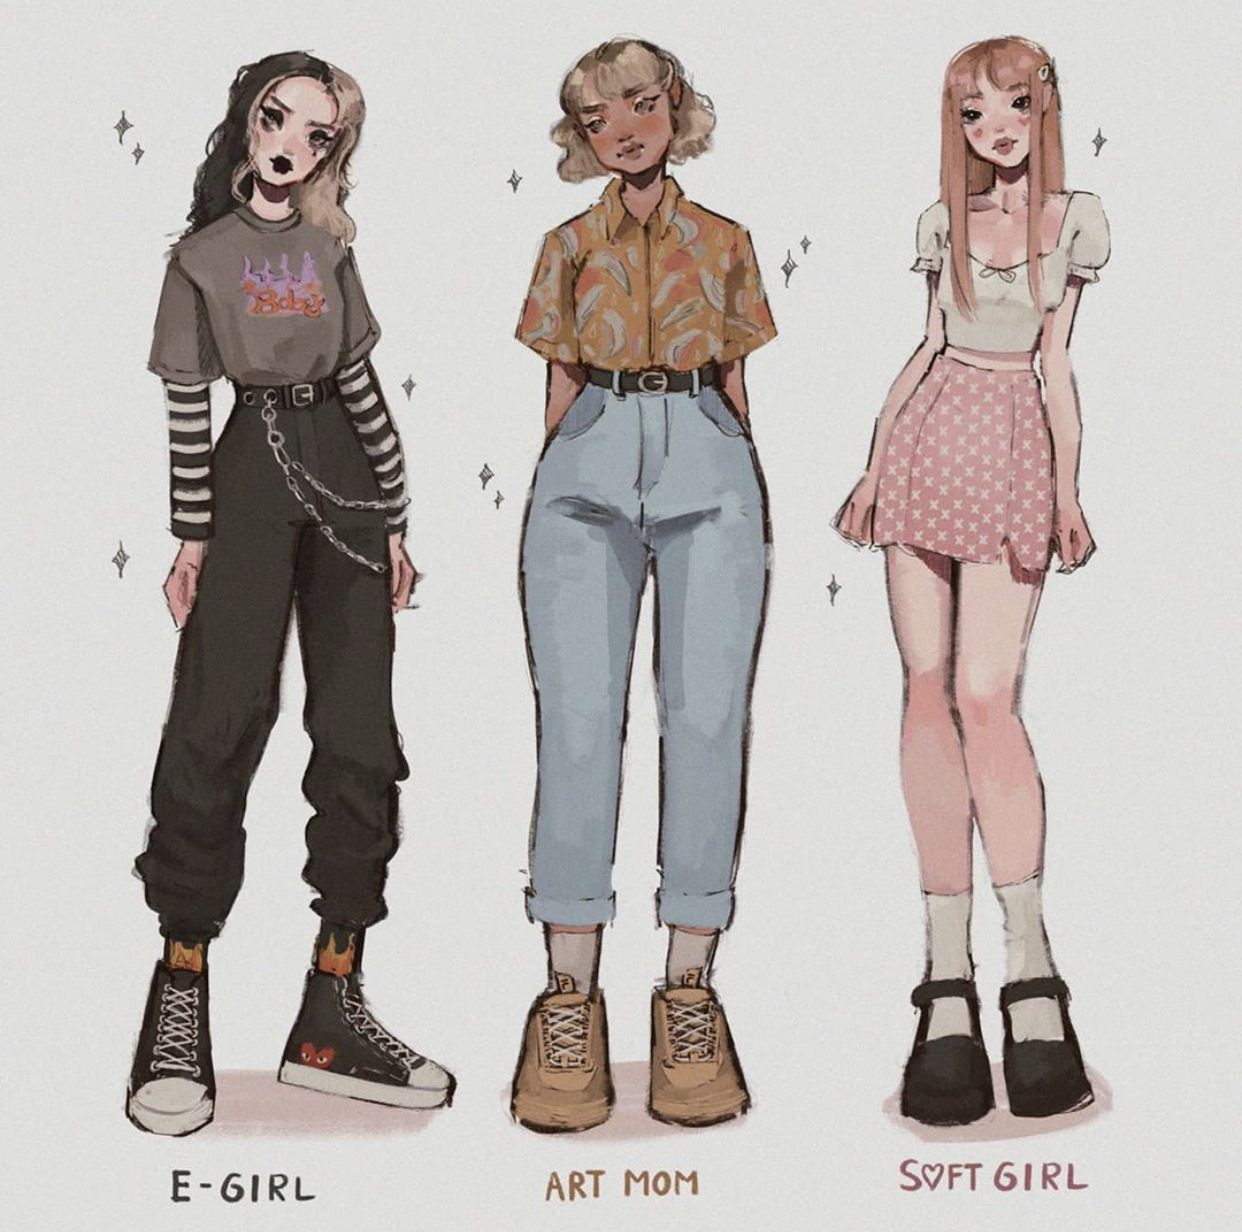 Pin By Rerereee On Art In 2020 Fashion Design Drawings Fashion Design Sketches Aesthetic Clothes